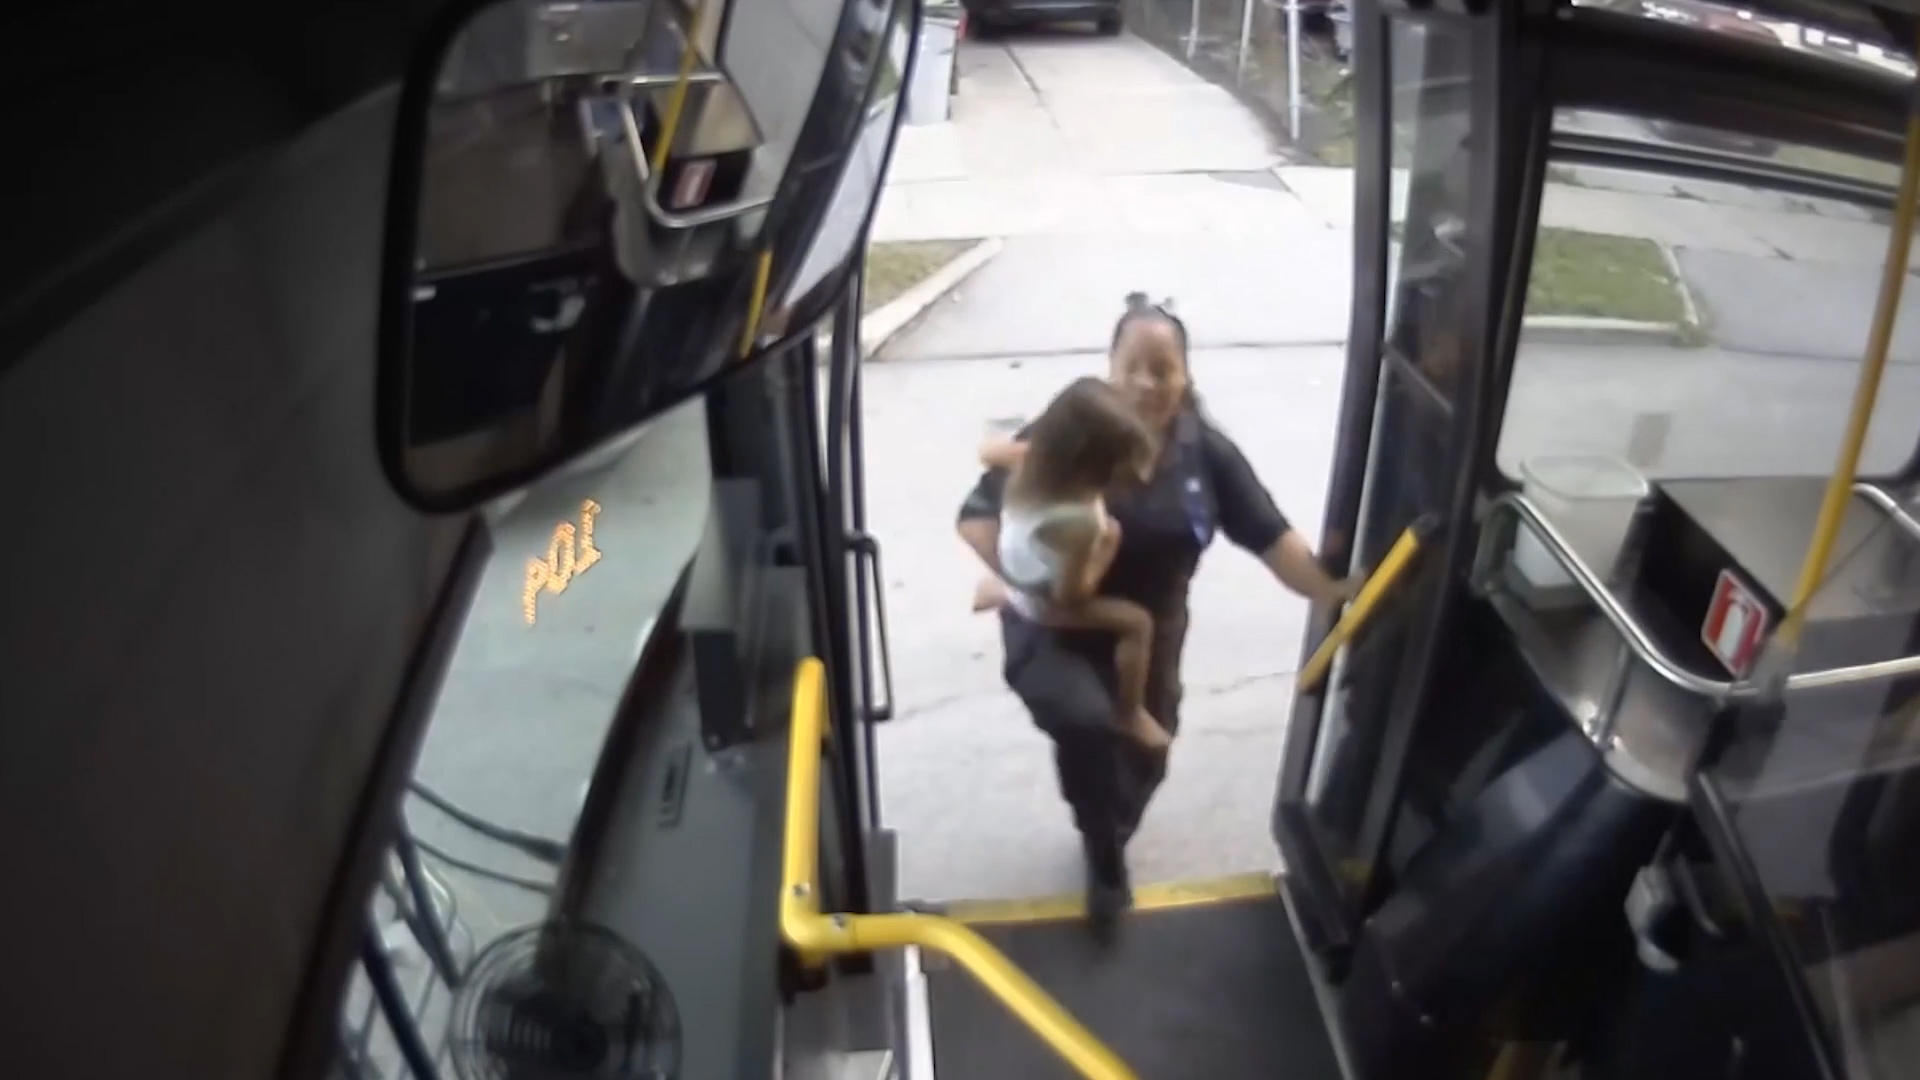 U.S.  bus driver rescues child found wandering barefoot